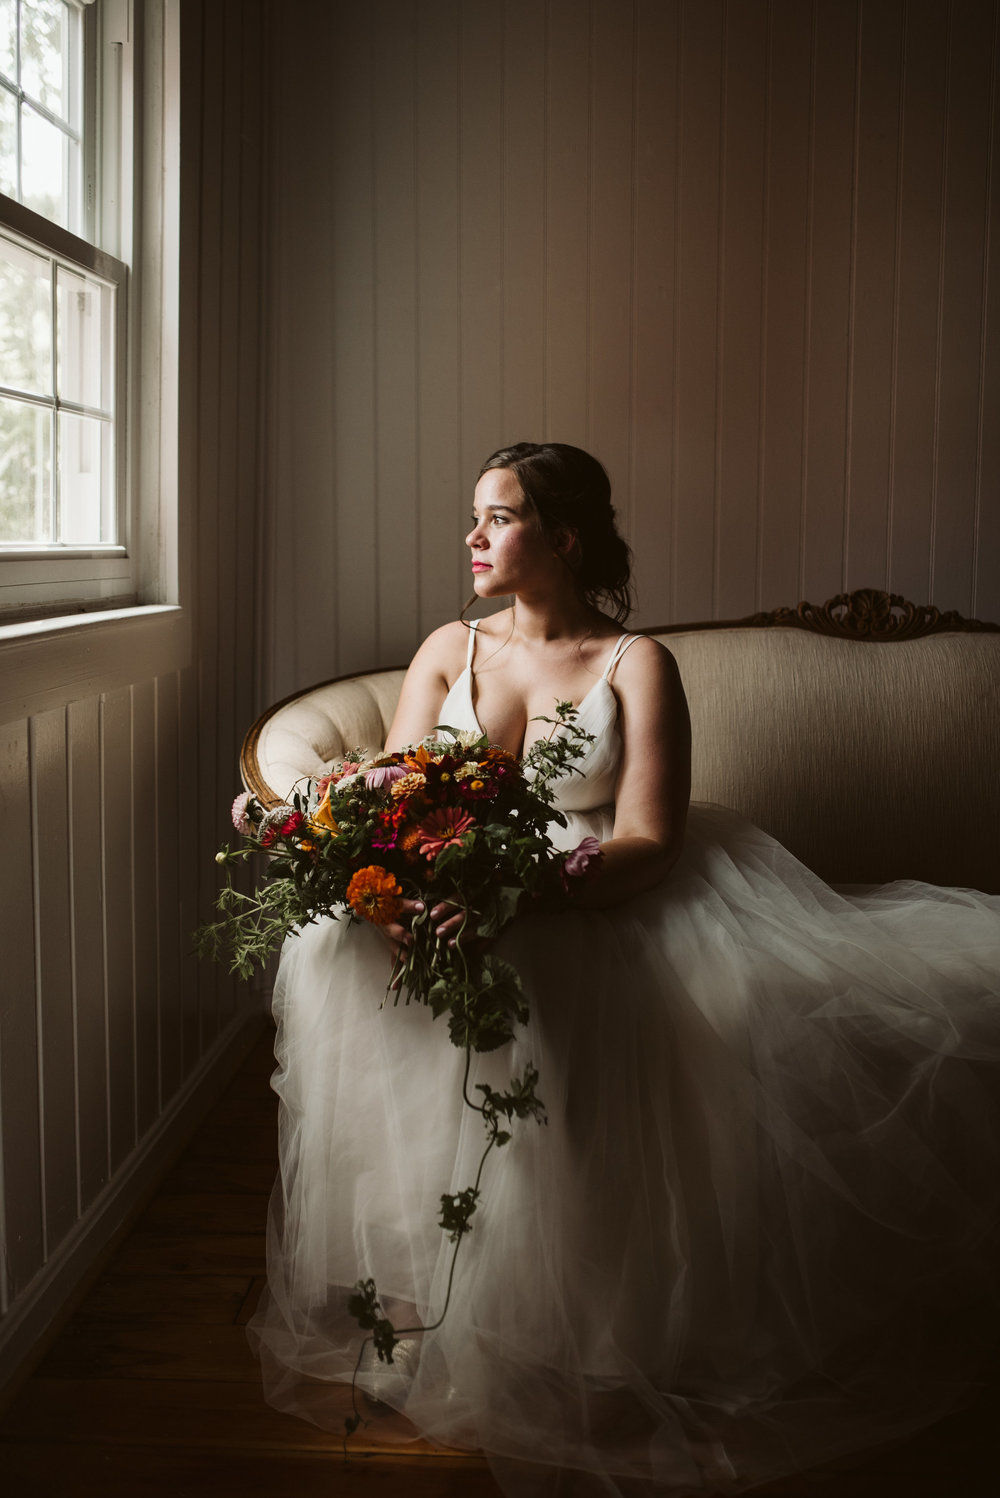 Rocklands Farm, Maryland, Intimate Wedding, Baltimore Wedding Photographer, Sungold Flower Co, Rustic, Romantic, Barn Wedding, Romantic Portrait of Bride Near Window